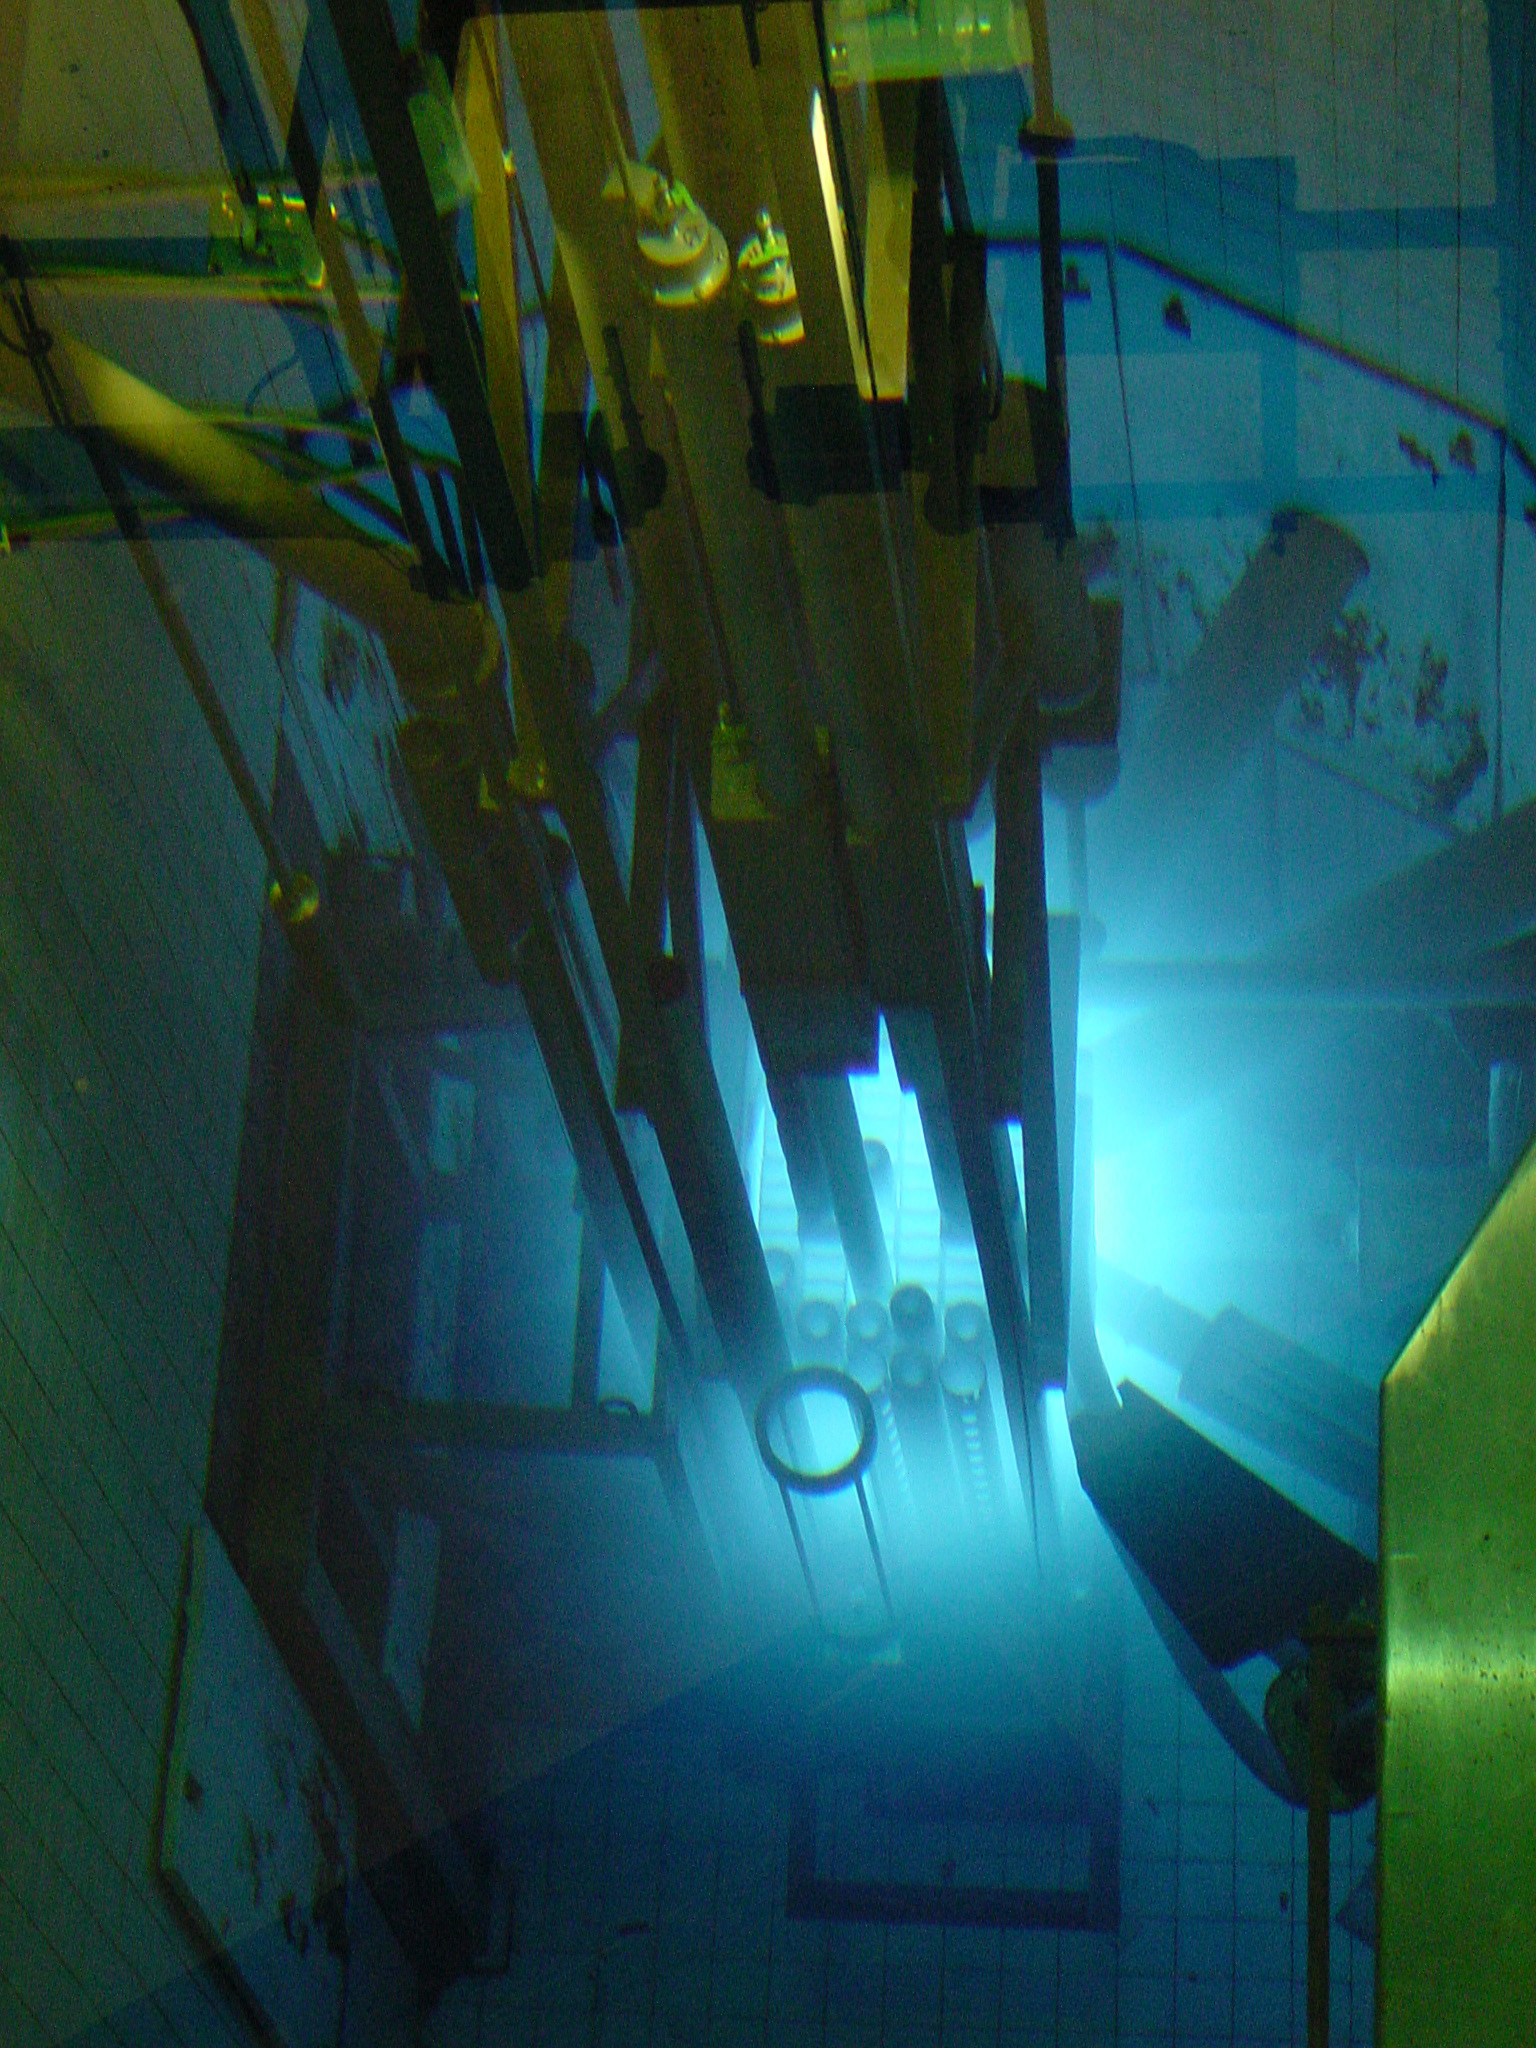 View of McMaster's Nuclear Research Reactor